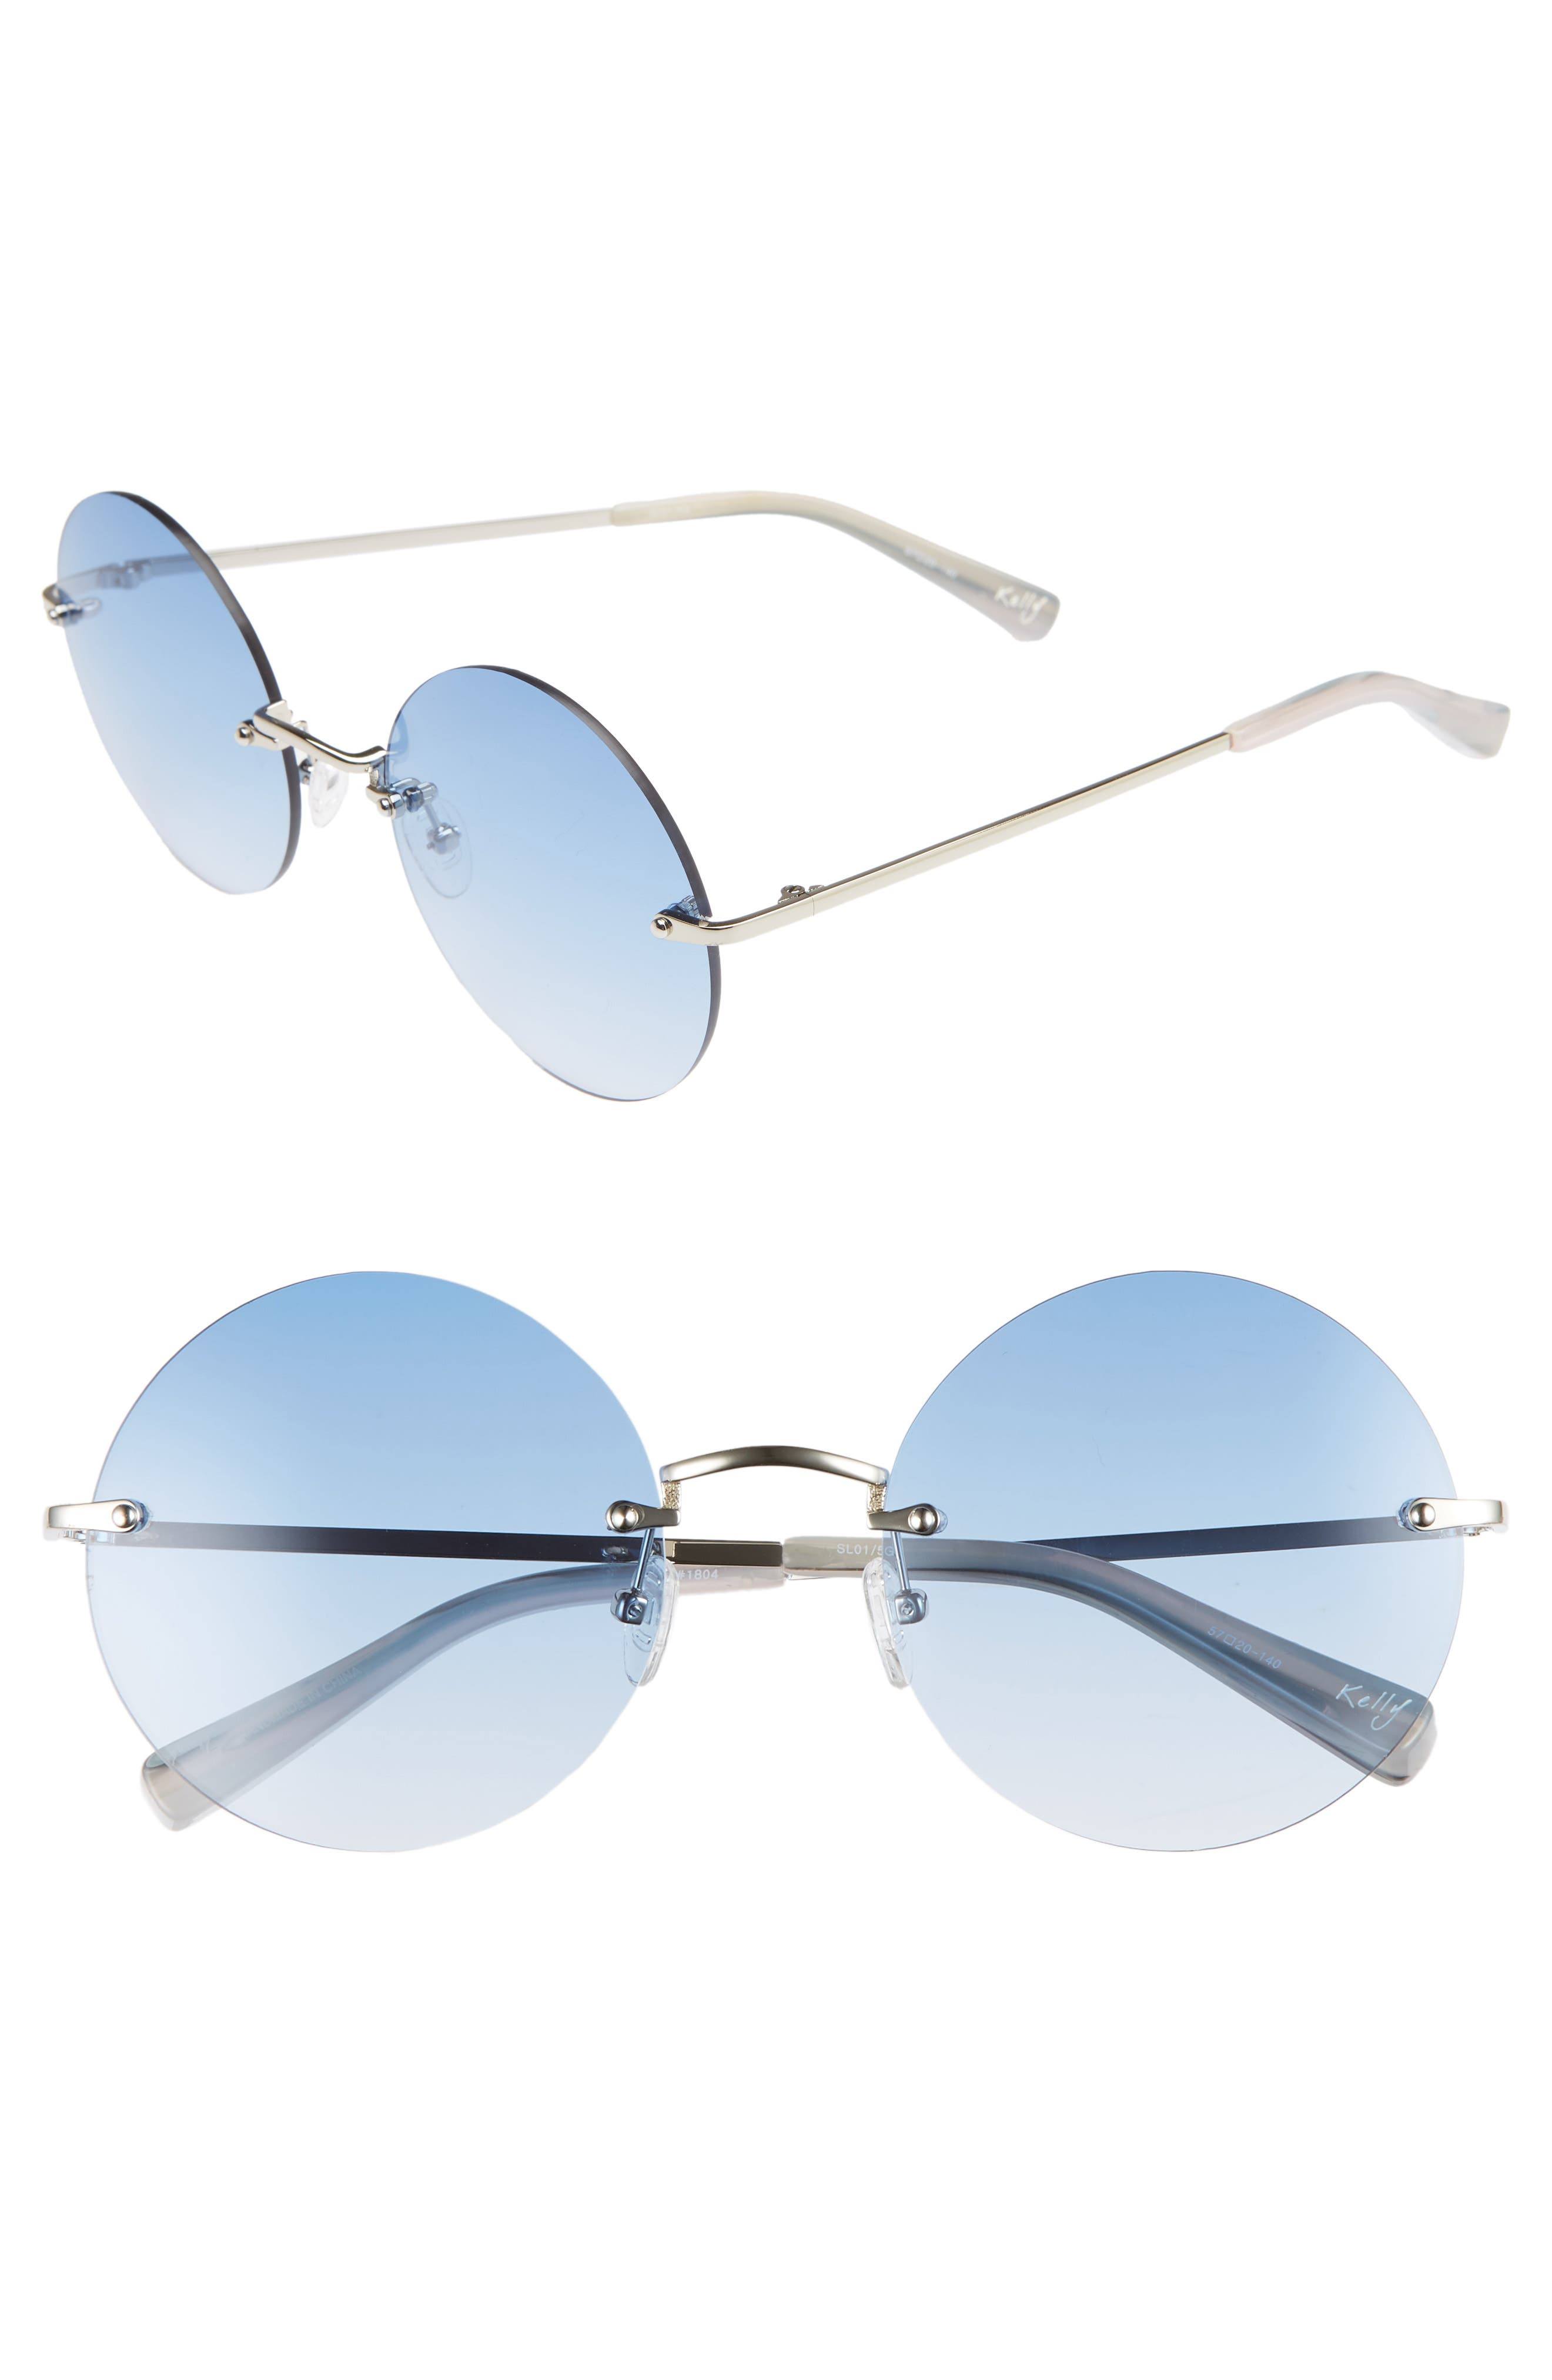 Kelly 57mm Rimless Round Sunglasses,                         Main,                         color, SILVER/ BLUE